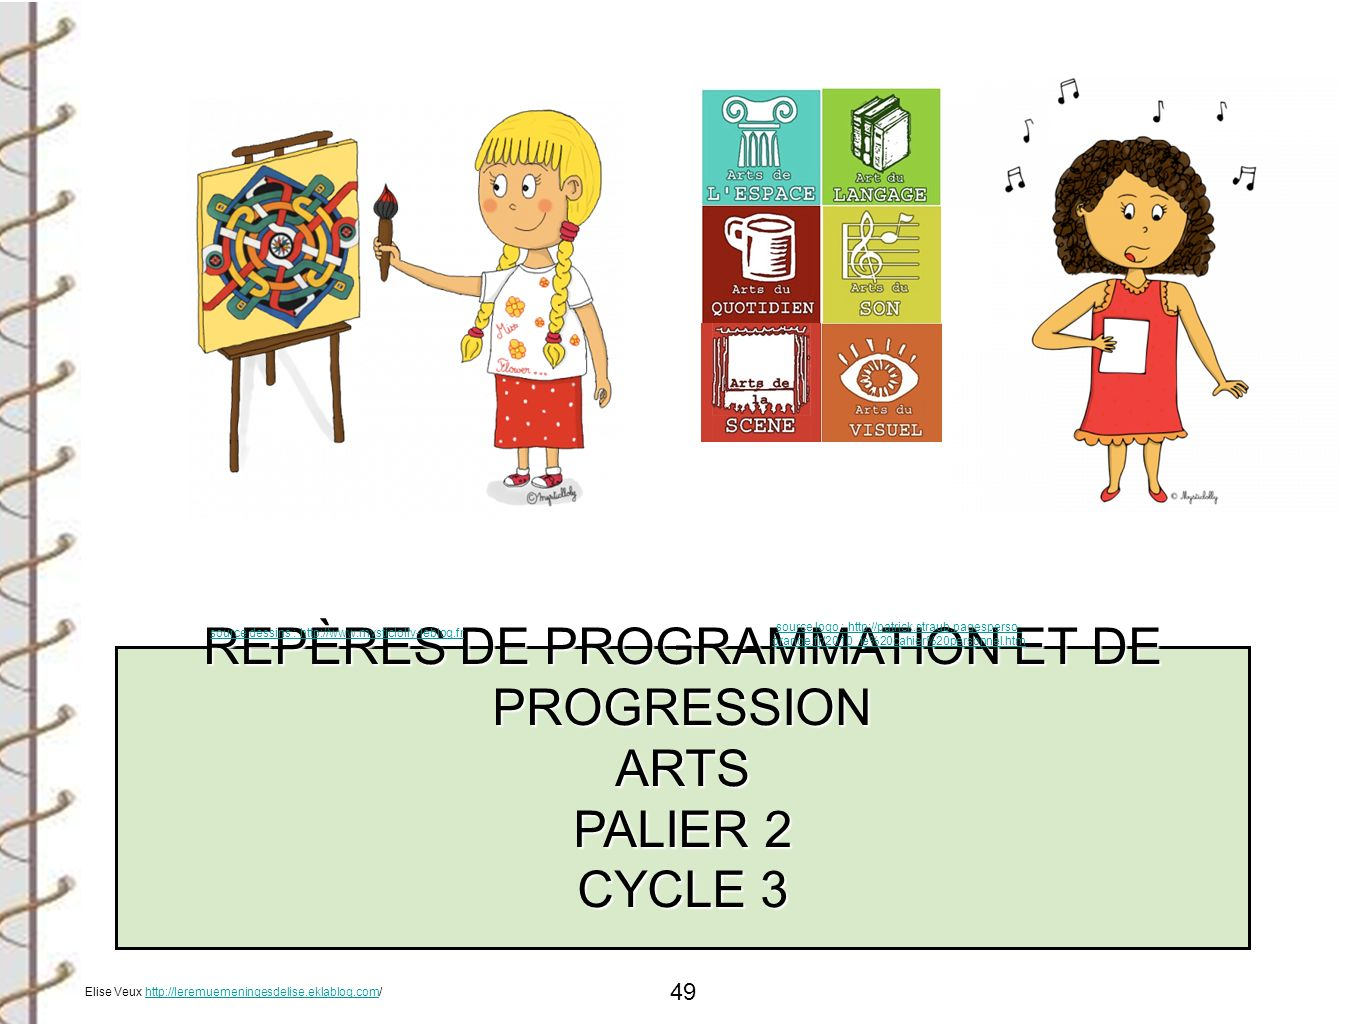 REPÈRES DE PROGRAMMATION ET DE PROGRESSION ARTS PALIER 2 CYCLE 3